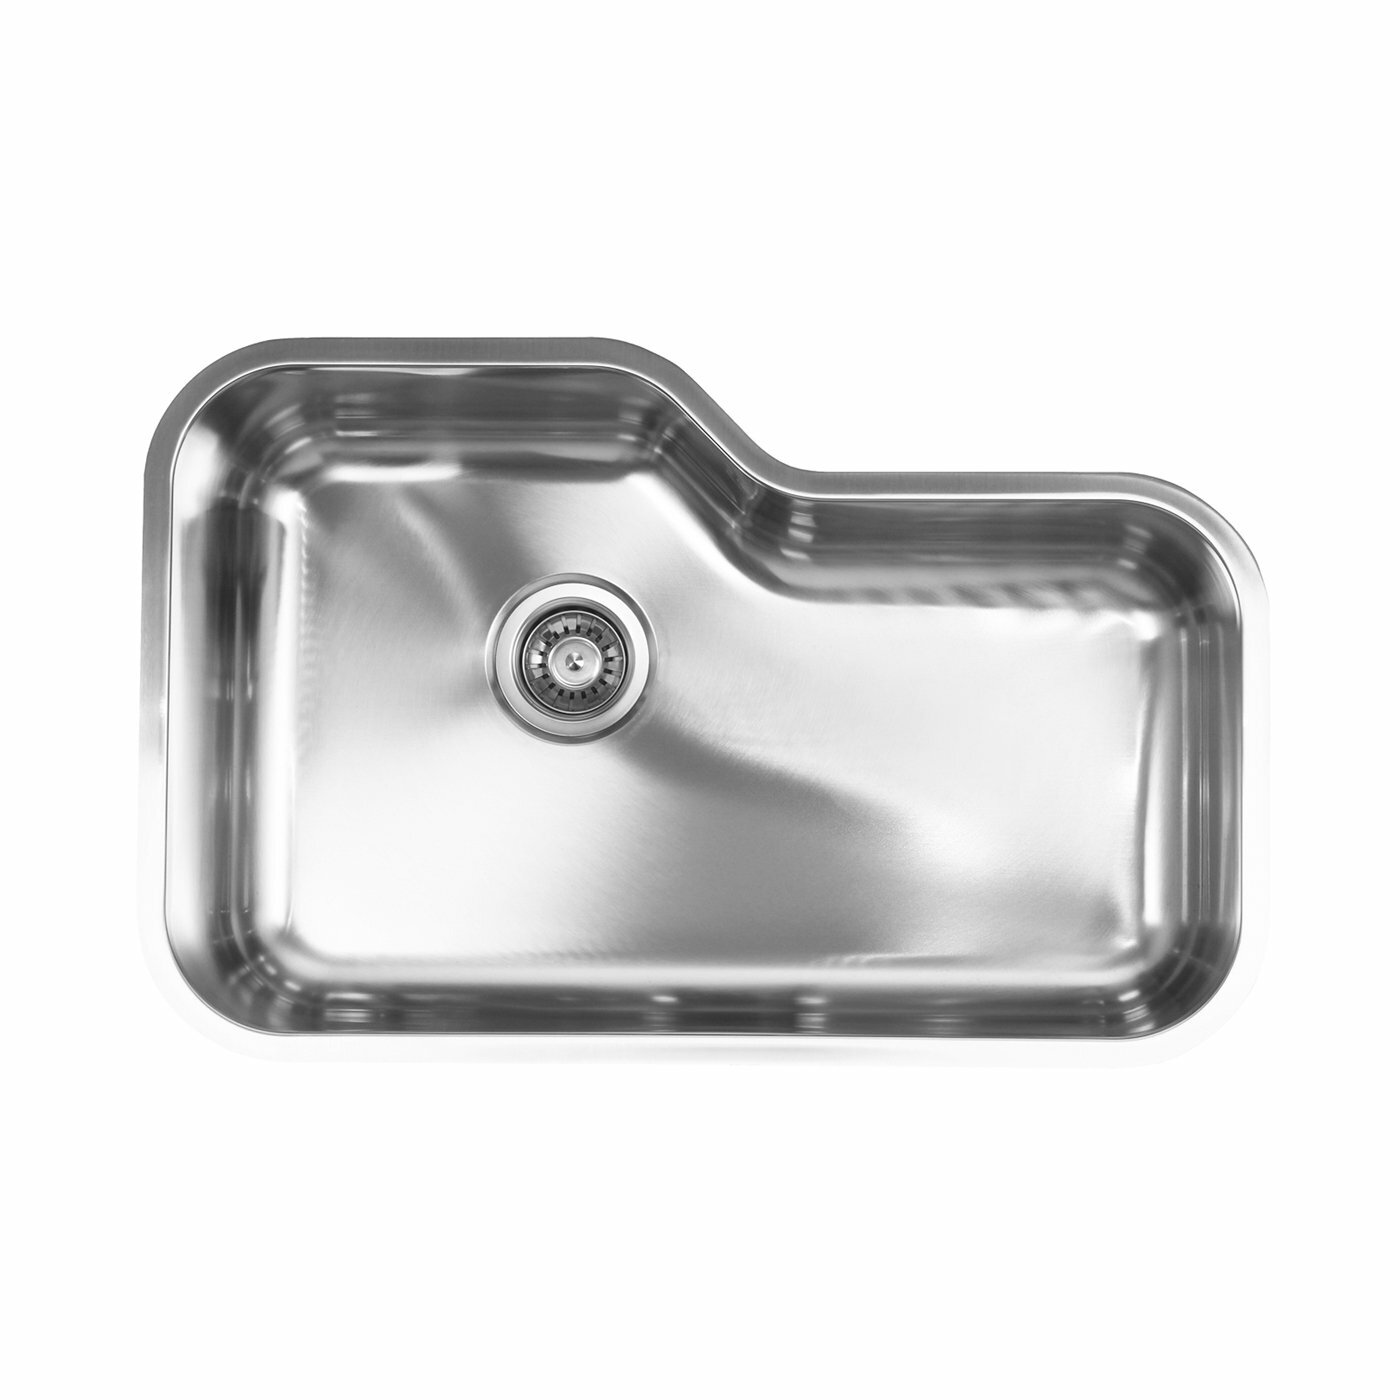 Cozy Kitchen Sinks Stainless Steel for Traditional Kitchen Design: Kitchen Sinks Stainless Steel | Stainless Steel Kitchen Sink Strainer Drain Stopper | Stainless Steel Kitchen Sink Manufacturers